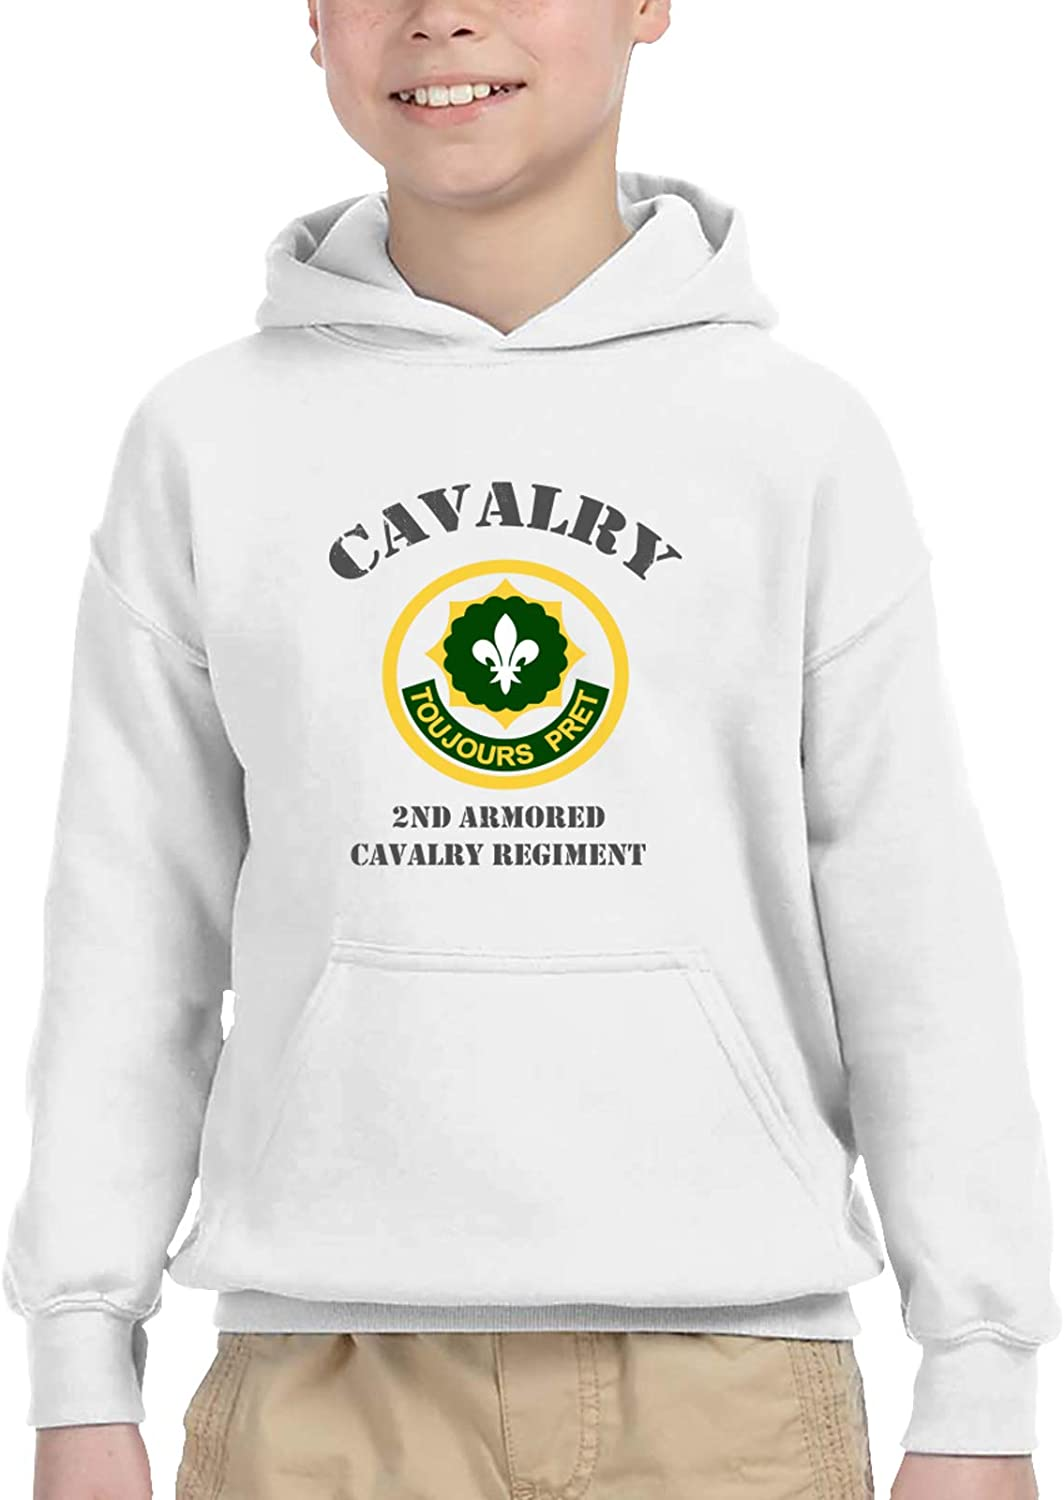 Army 2nd Armored Cavalry Regiment Veteran Juvenile Hooded Sweater Casual Hoodie For Baby Boys Girls